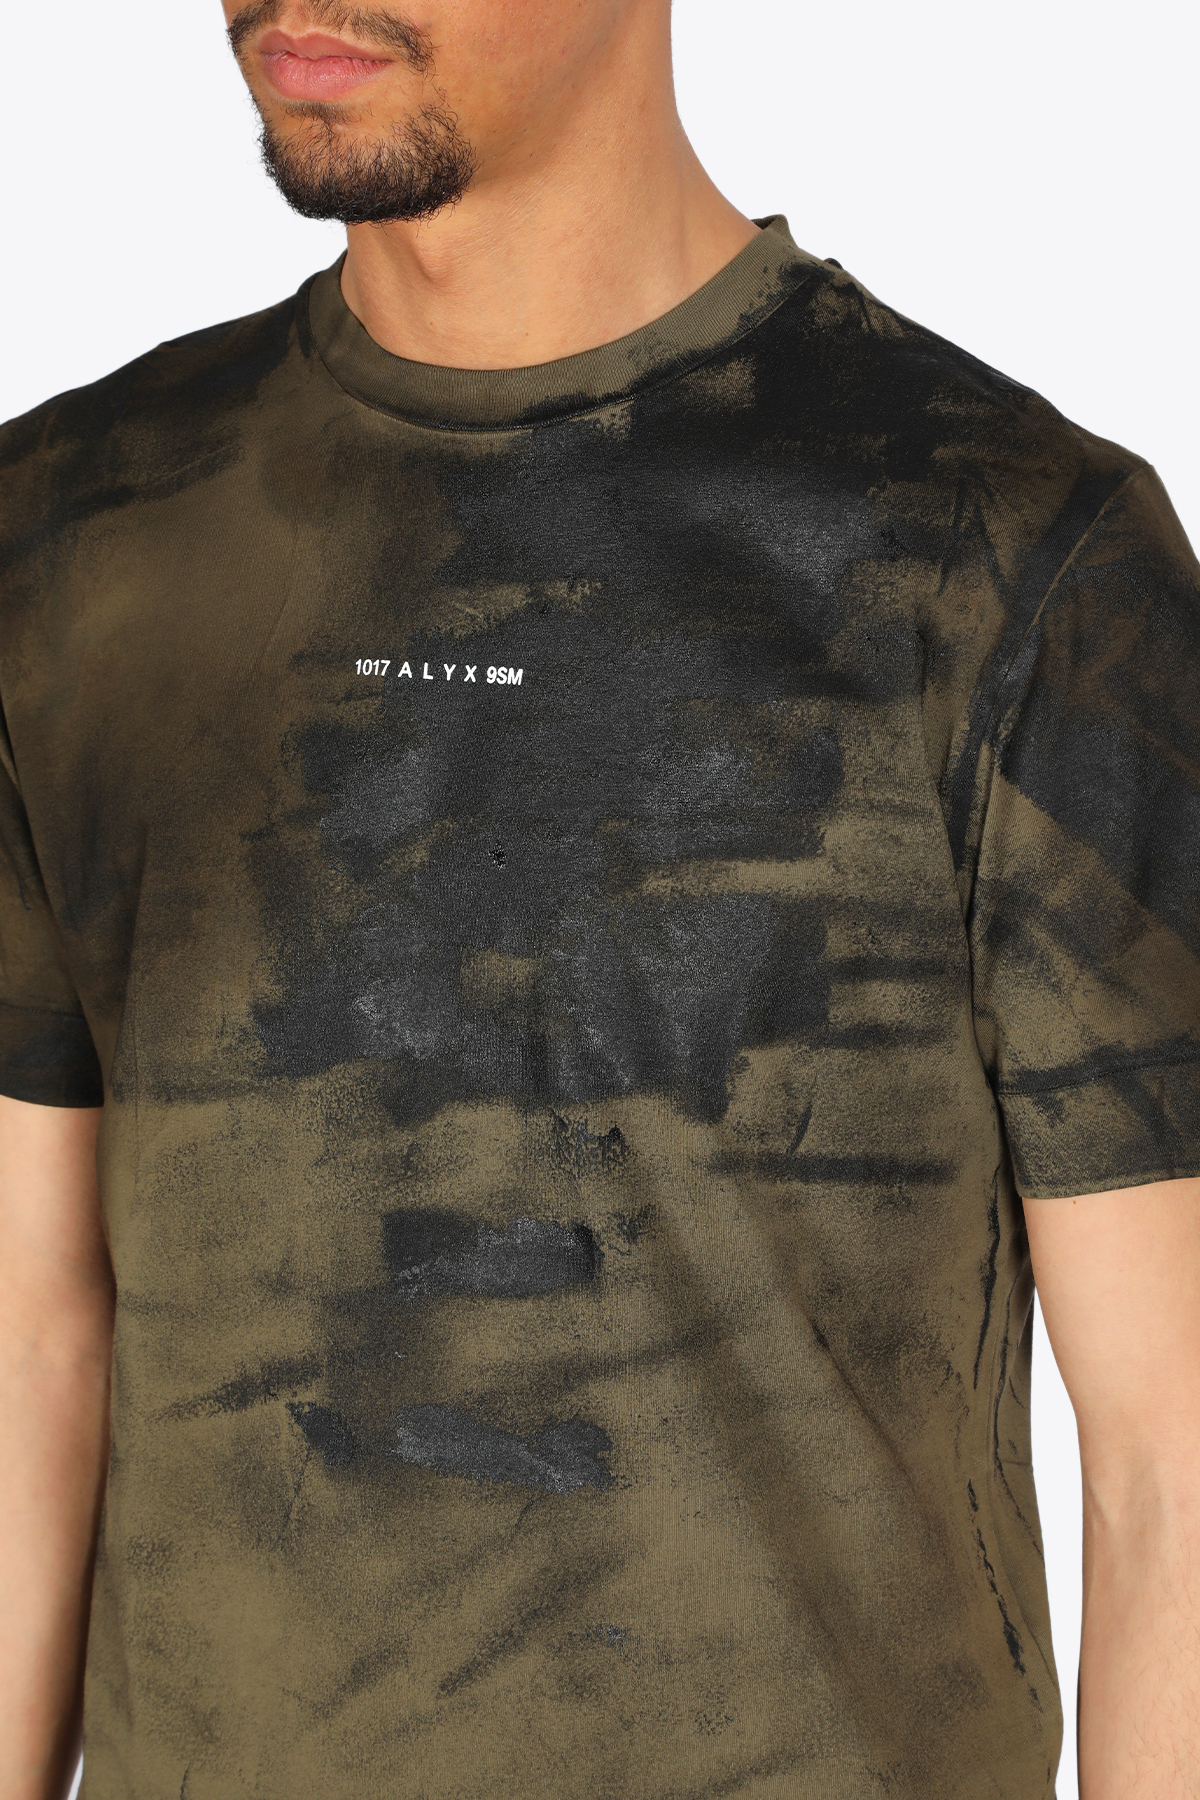 CHANGE OF HEART S/S TREATED TEE 1017 ALYX 9SM | 8 | AAMTS0225FA01 CHANGE OF HEART S/S TREATECAMO DARK OLIVE